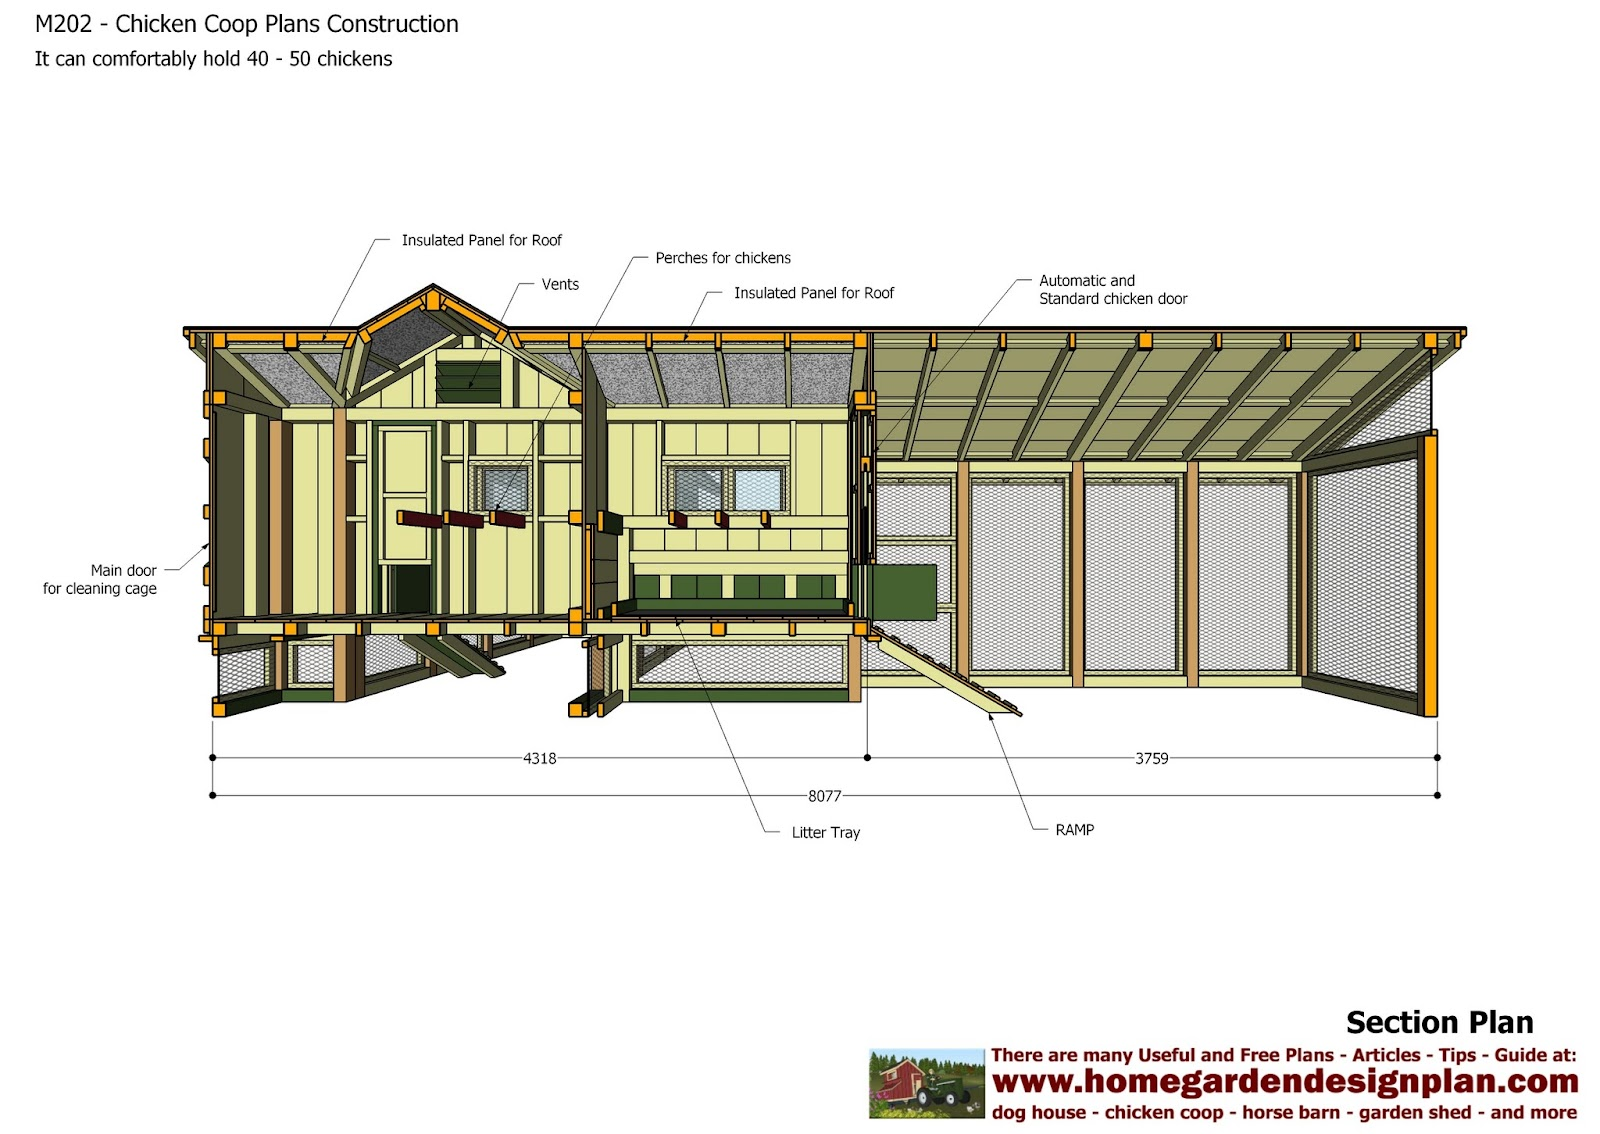 Chicken House Plans For 50 Chickens home garden plans: m202 - chicken coop plans construction